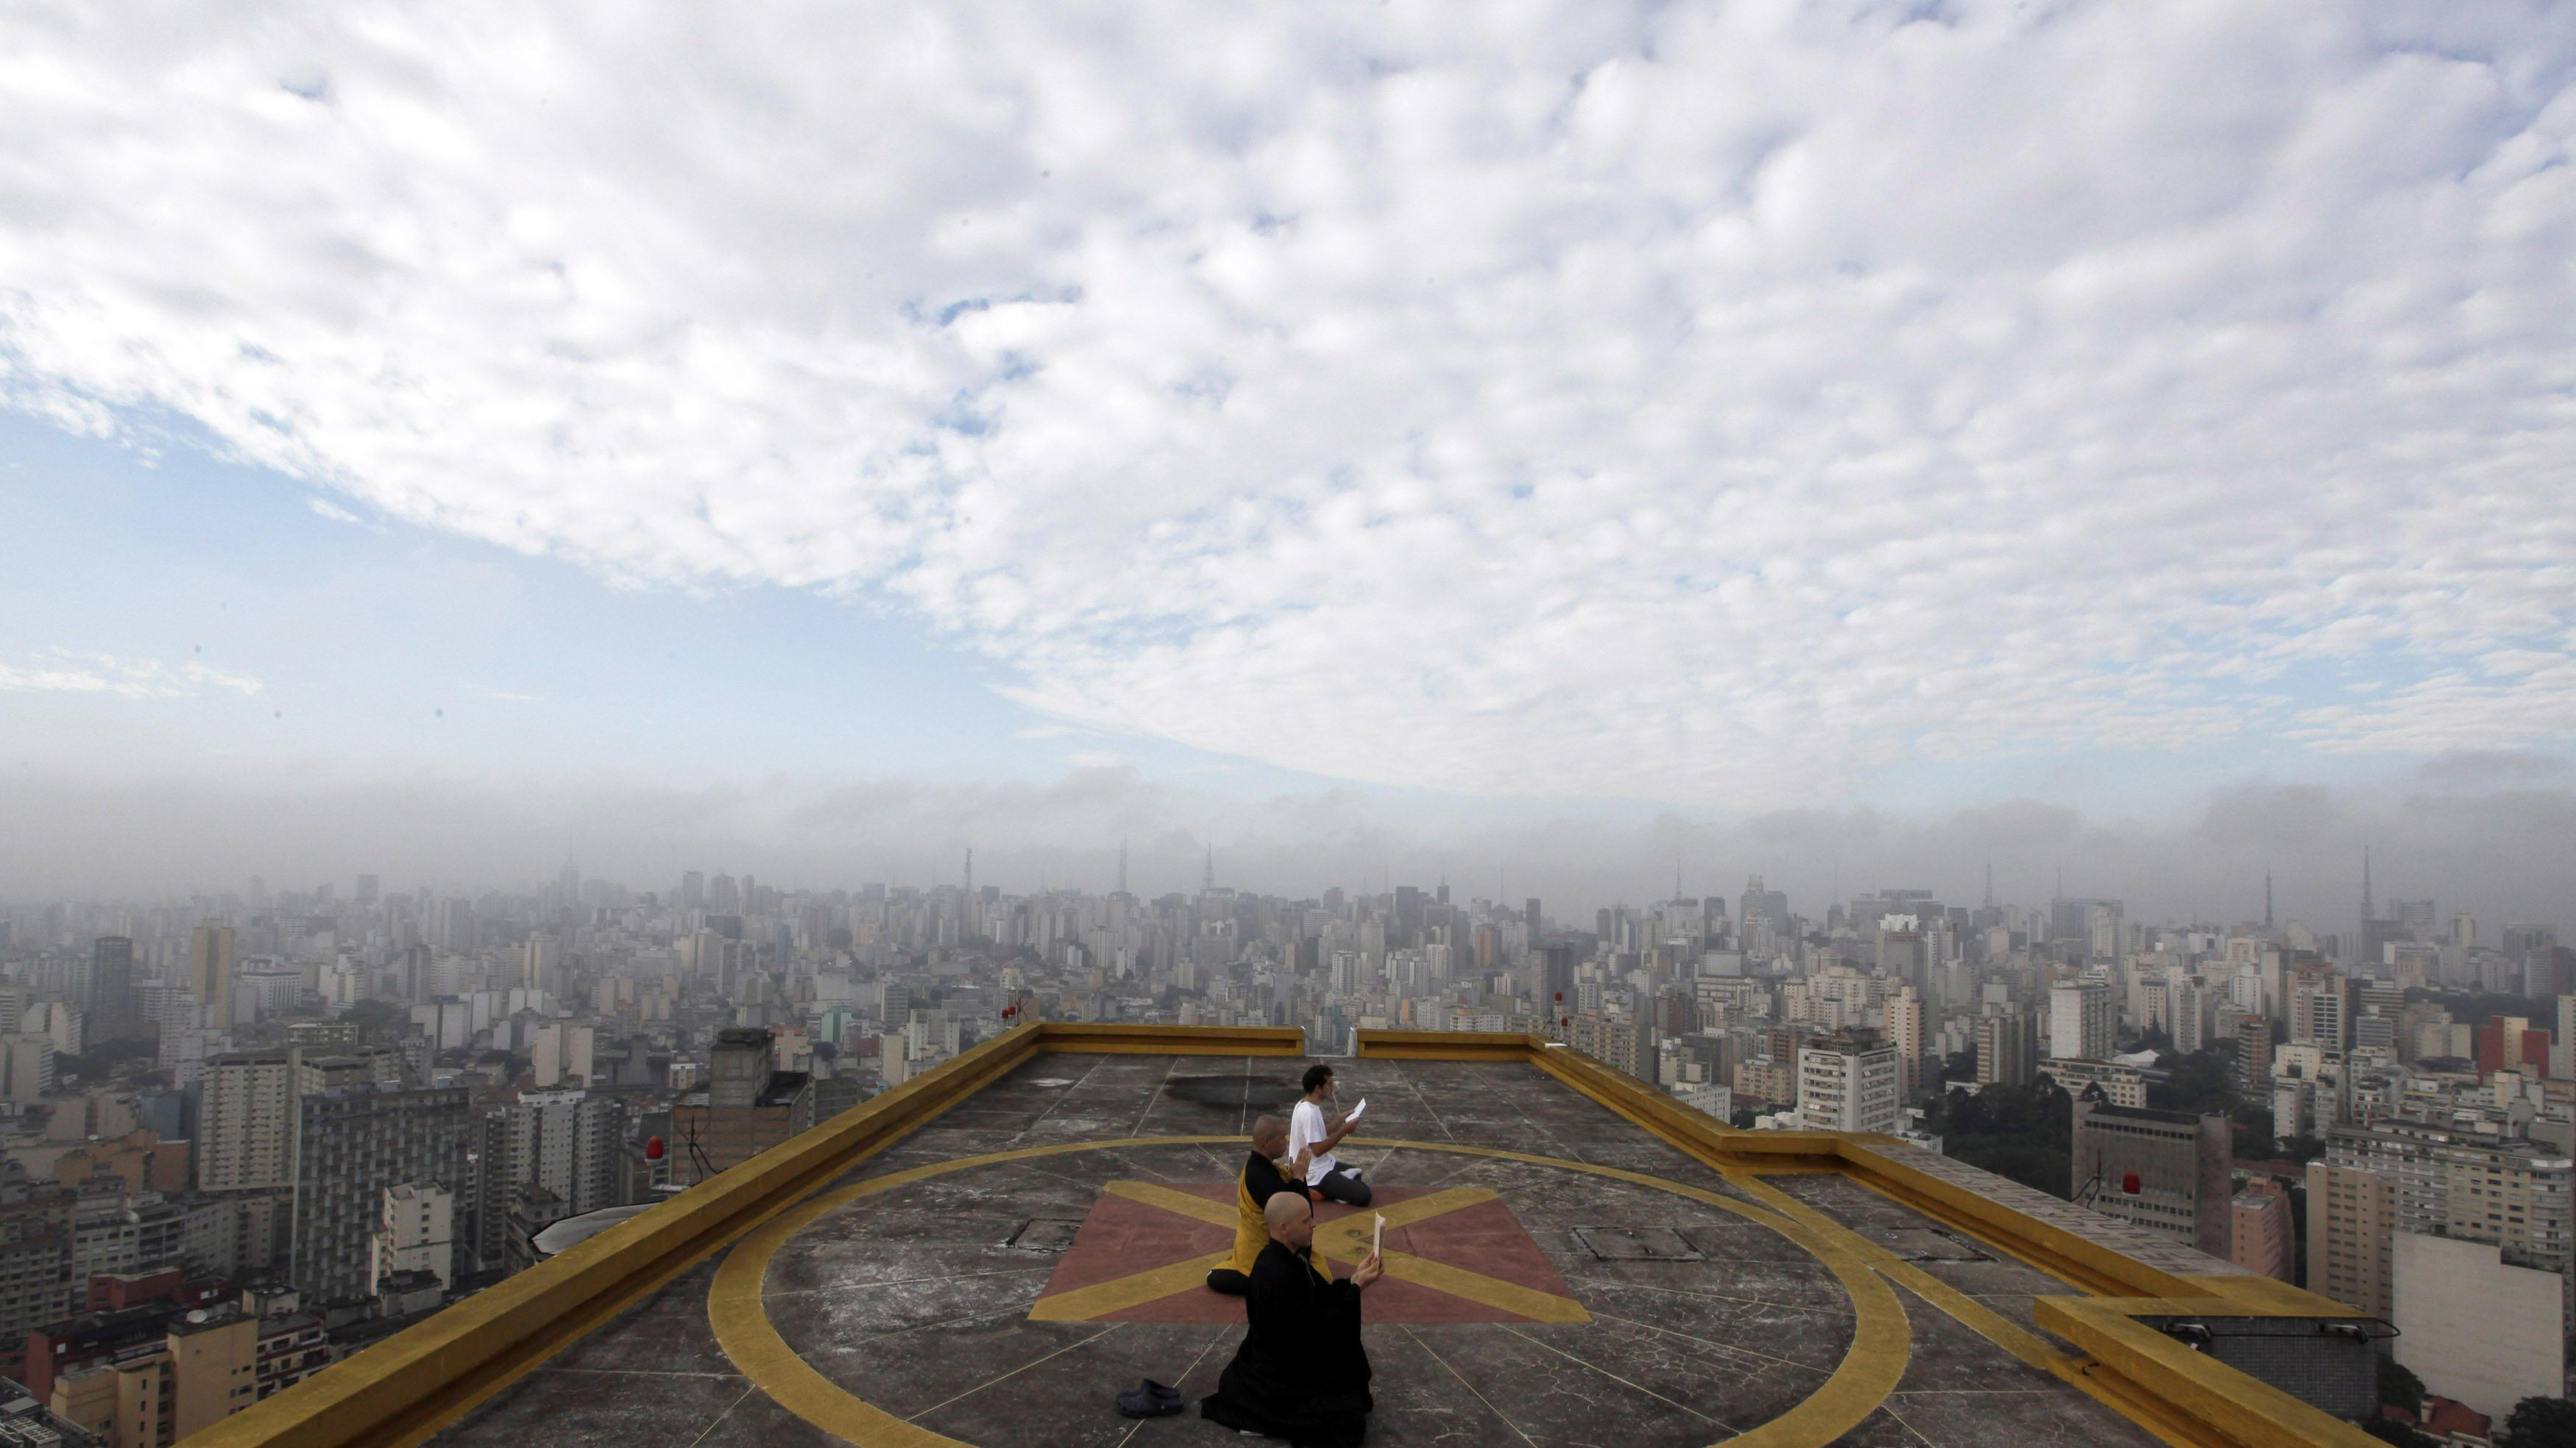 Buddhist monks Seigen, Jisho and Costa meditate on the helipad of Copan building in downtown Sao Paulo.